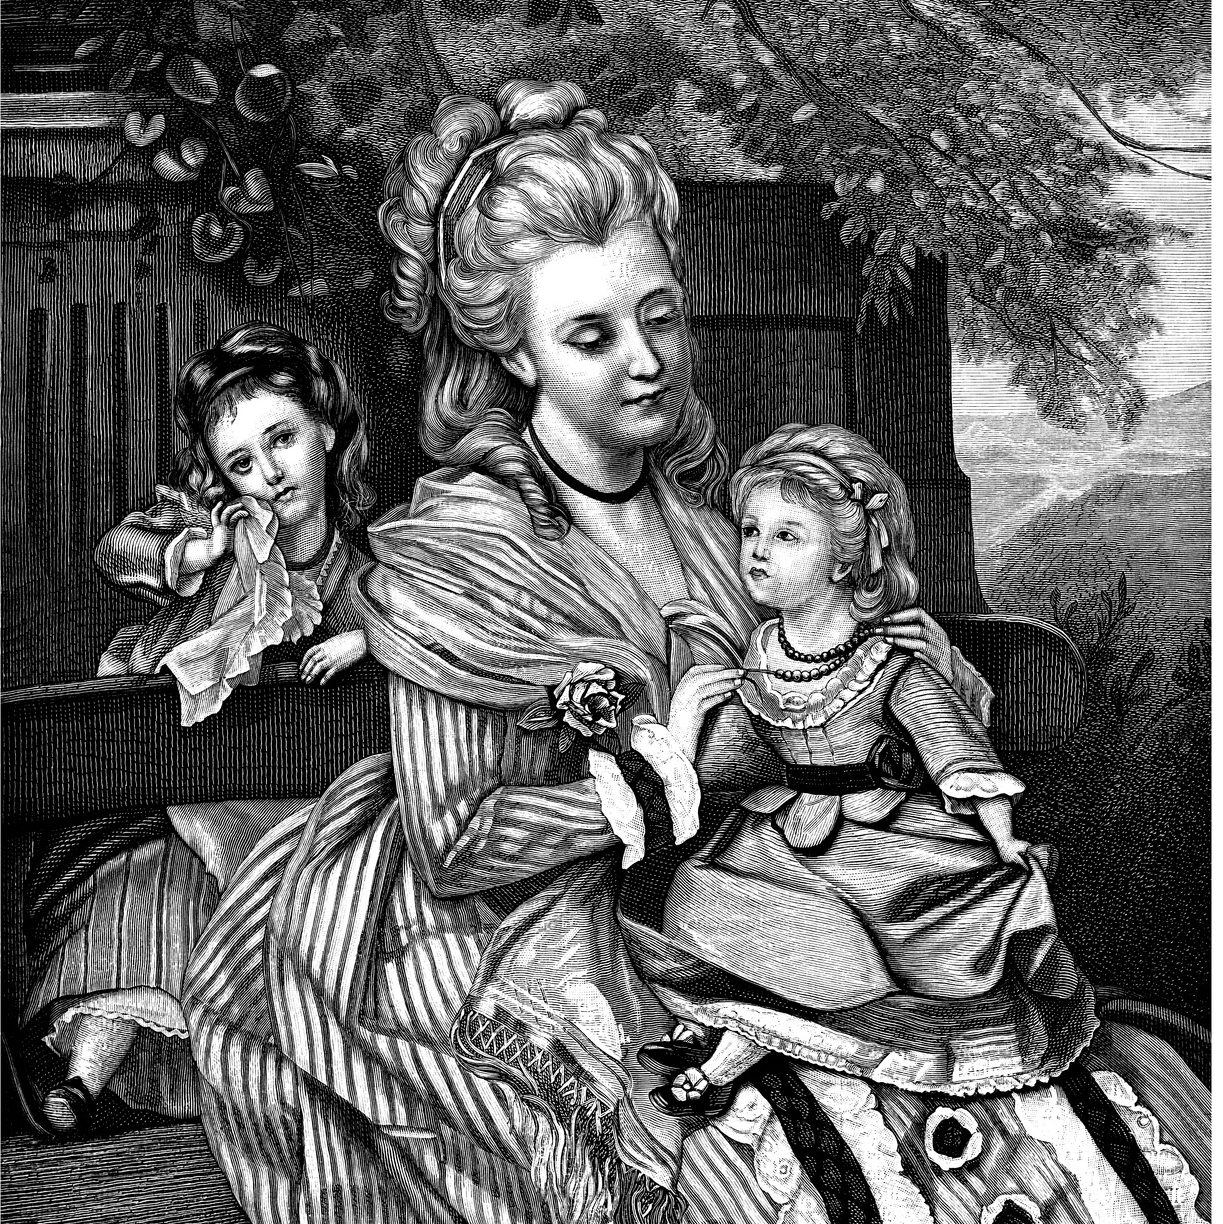 PCOS | RSC Bay Area | 18th century illustration woman and children